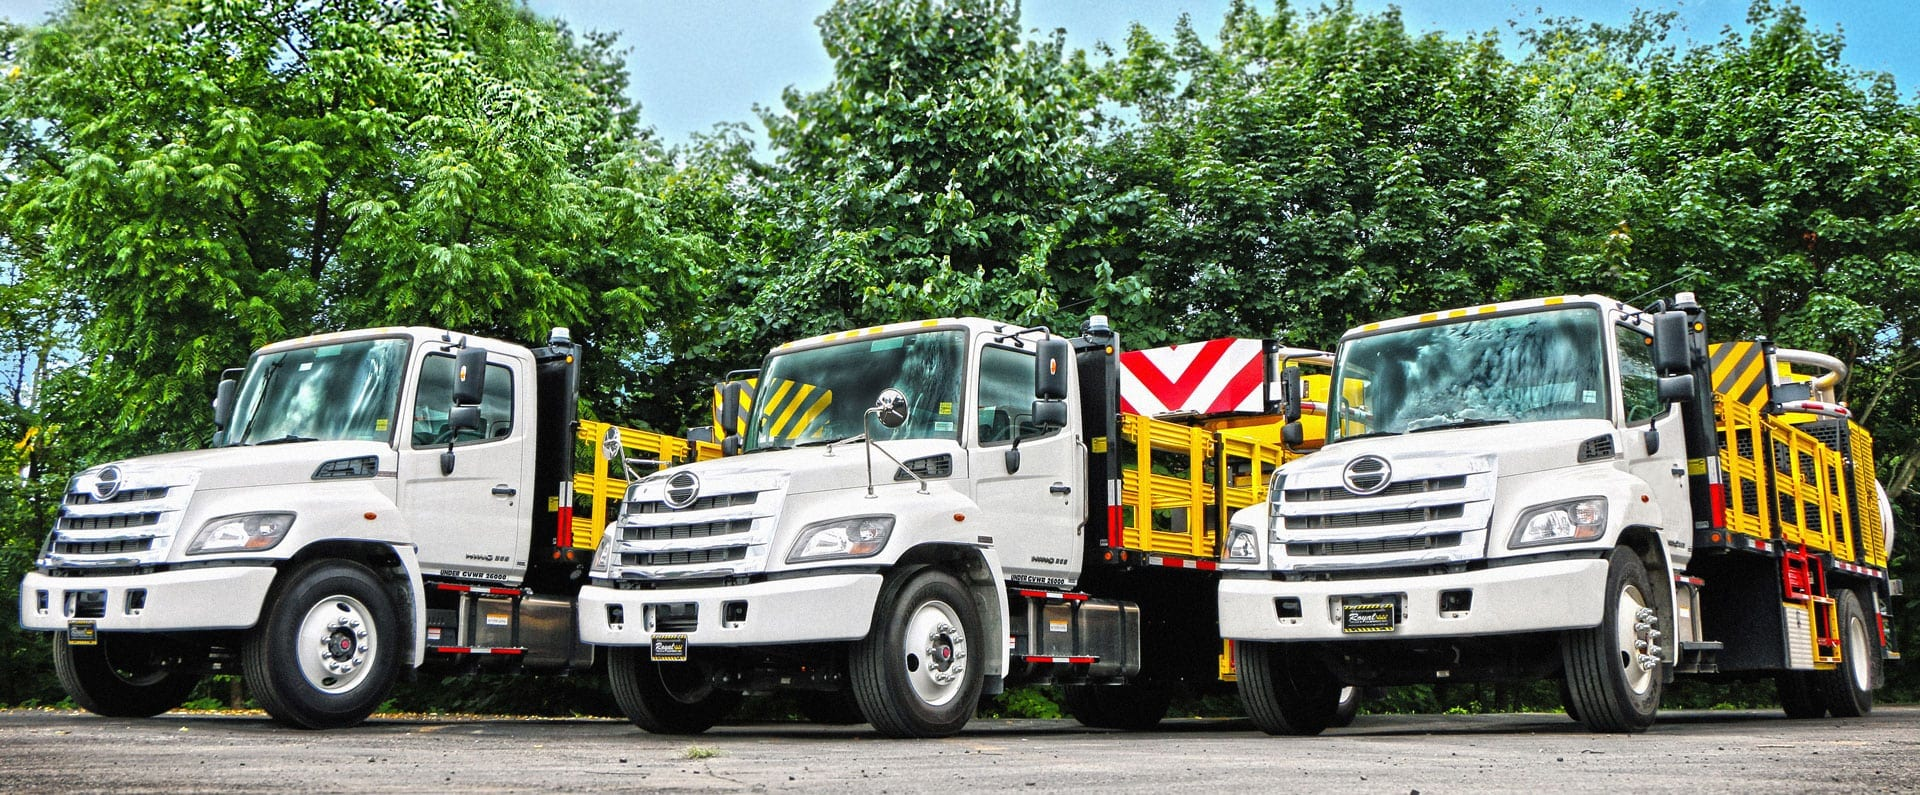 Royal Truck & Equipment TMA Trucks